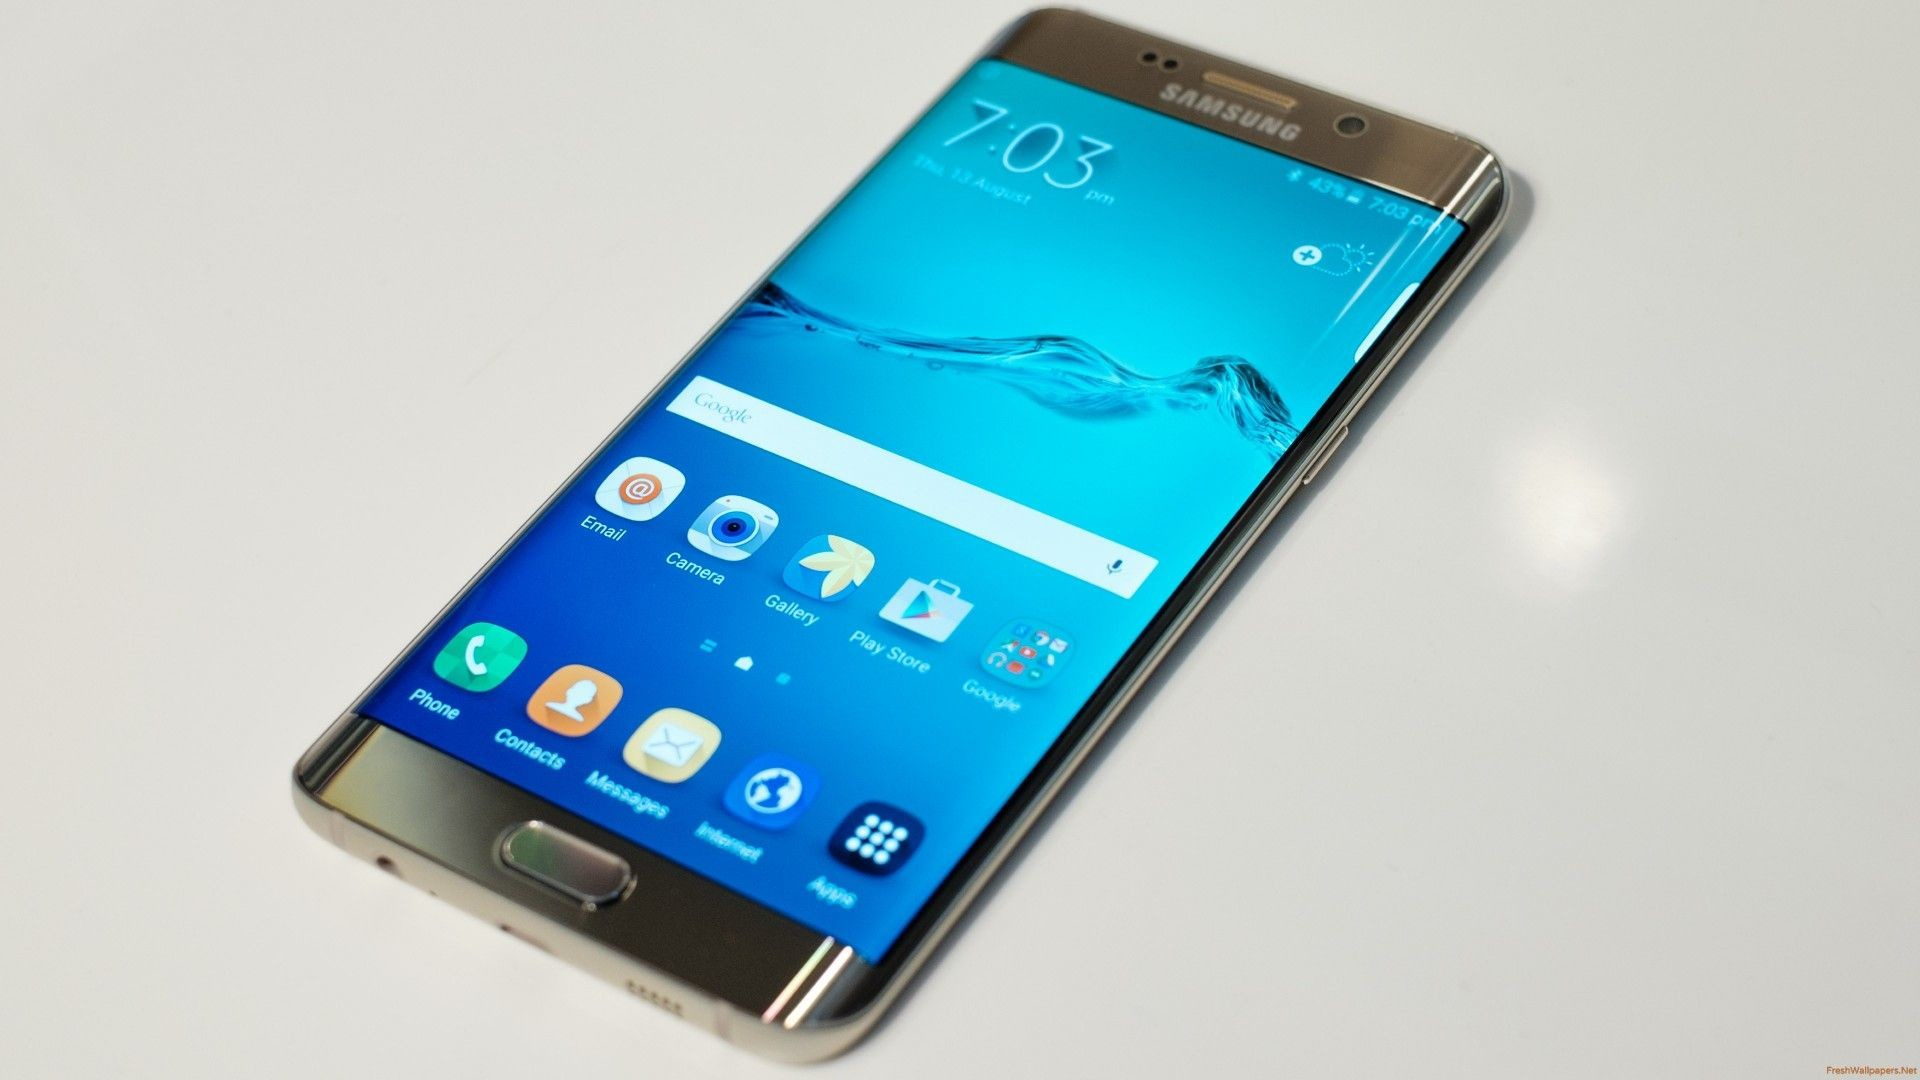 Download Samsung Galaxy S6 Wallpaper Leaked: Galaxy S6 Edge Plus Wallpaper (73+ Images